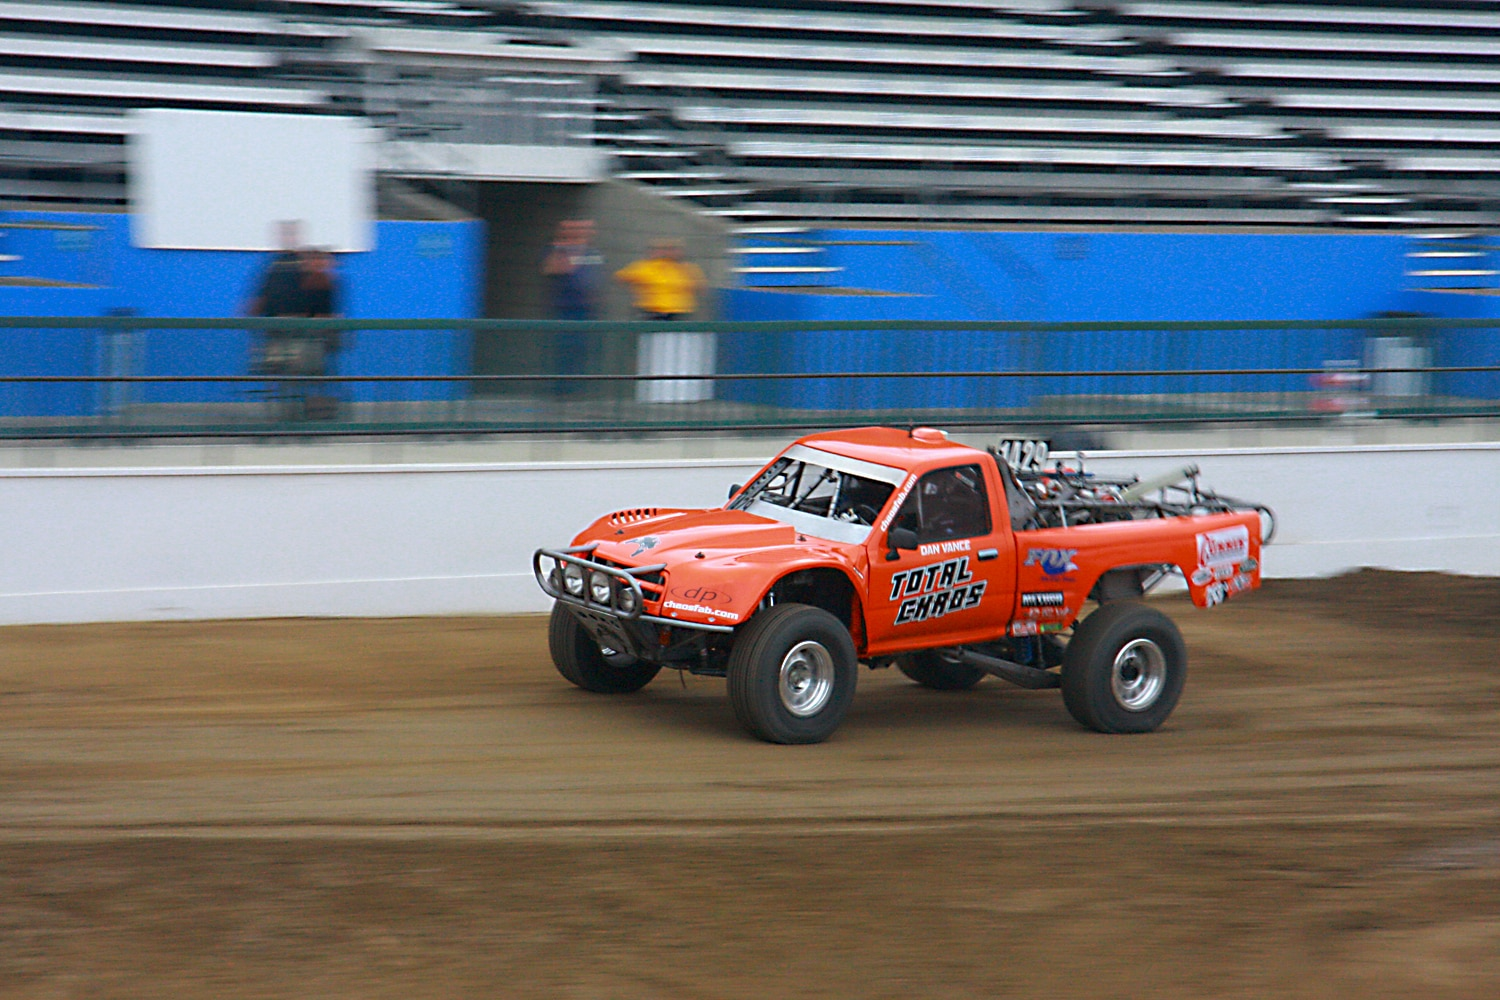 Off Road Race Truck   22  Dan Vance Total Chaos Toyota pickup front three quarter